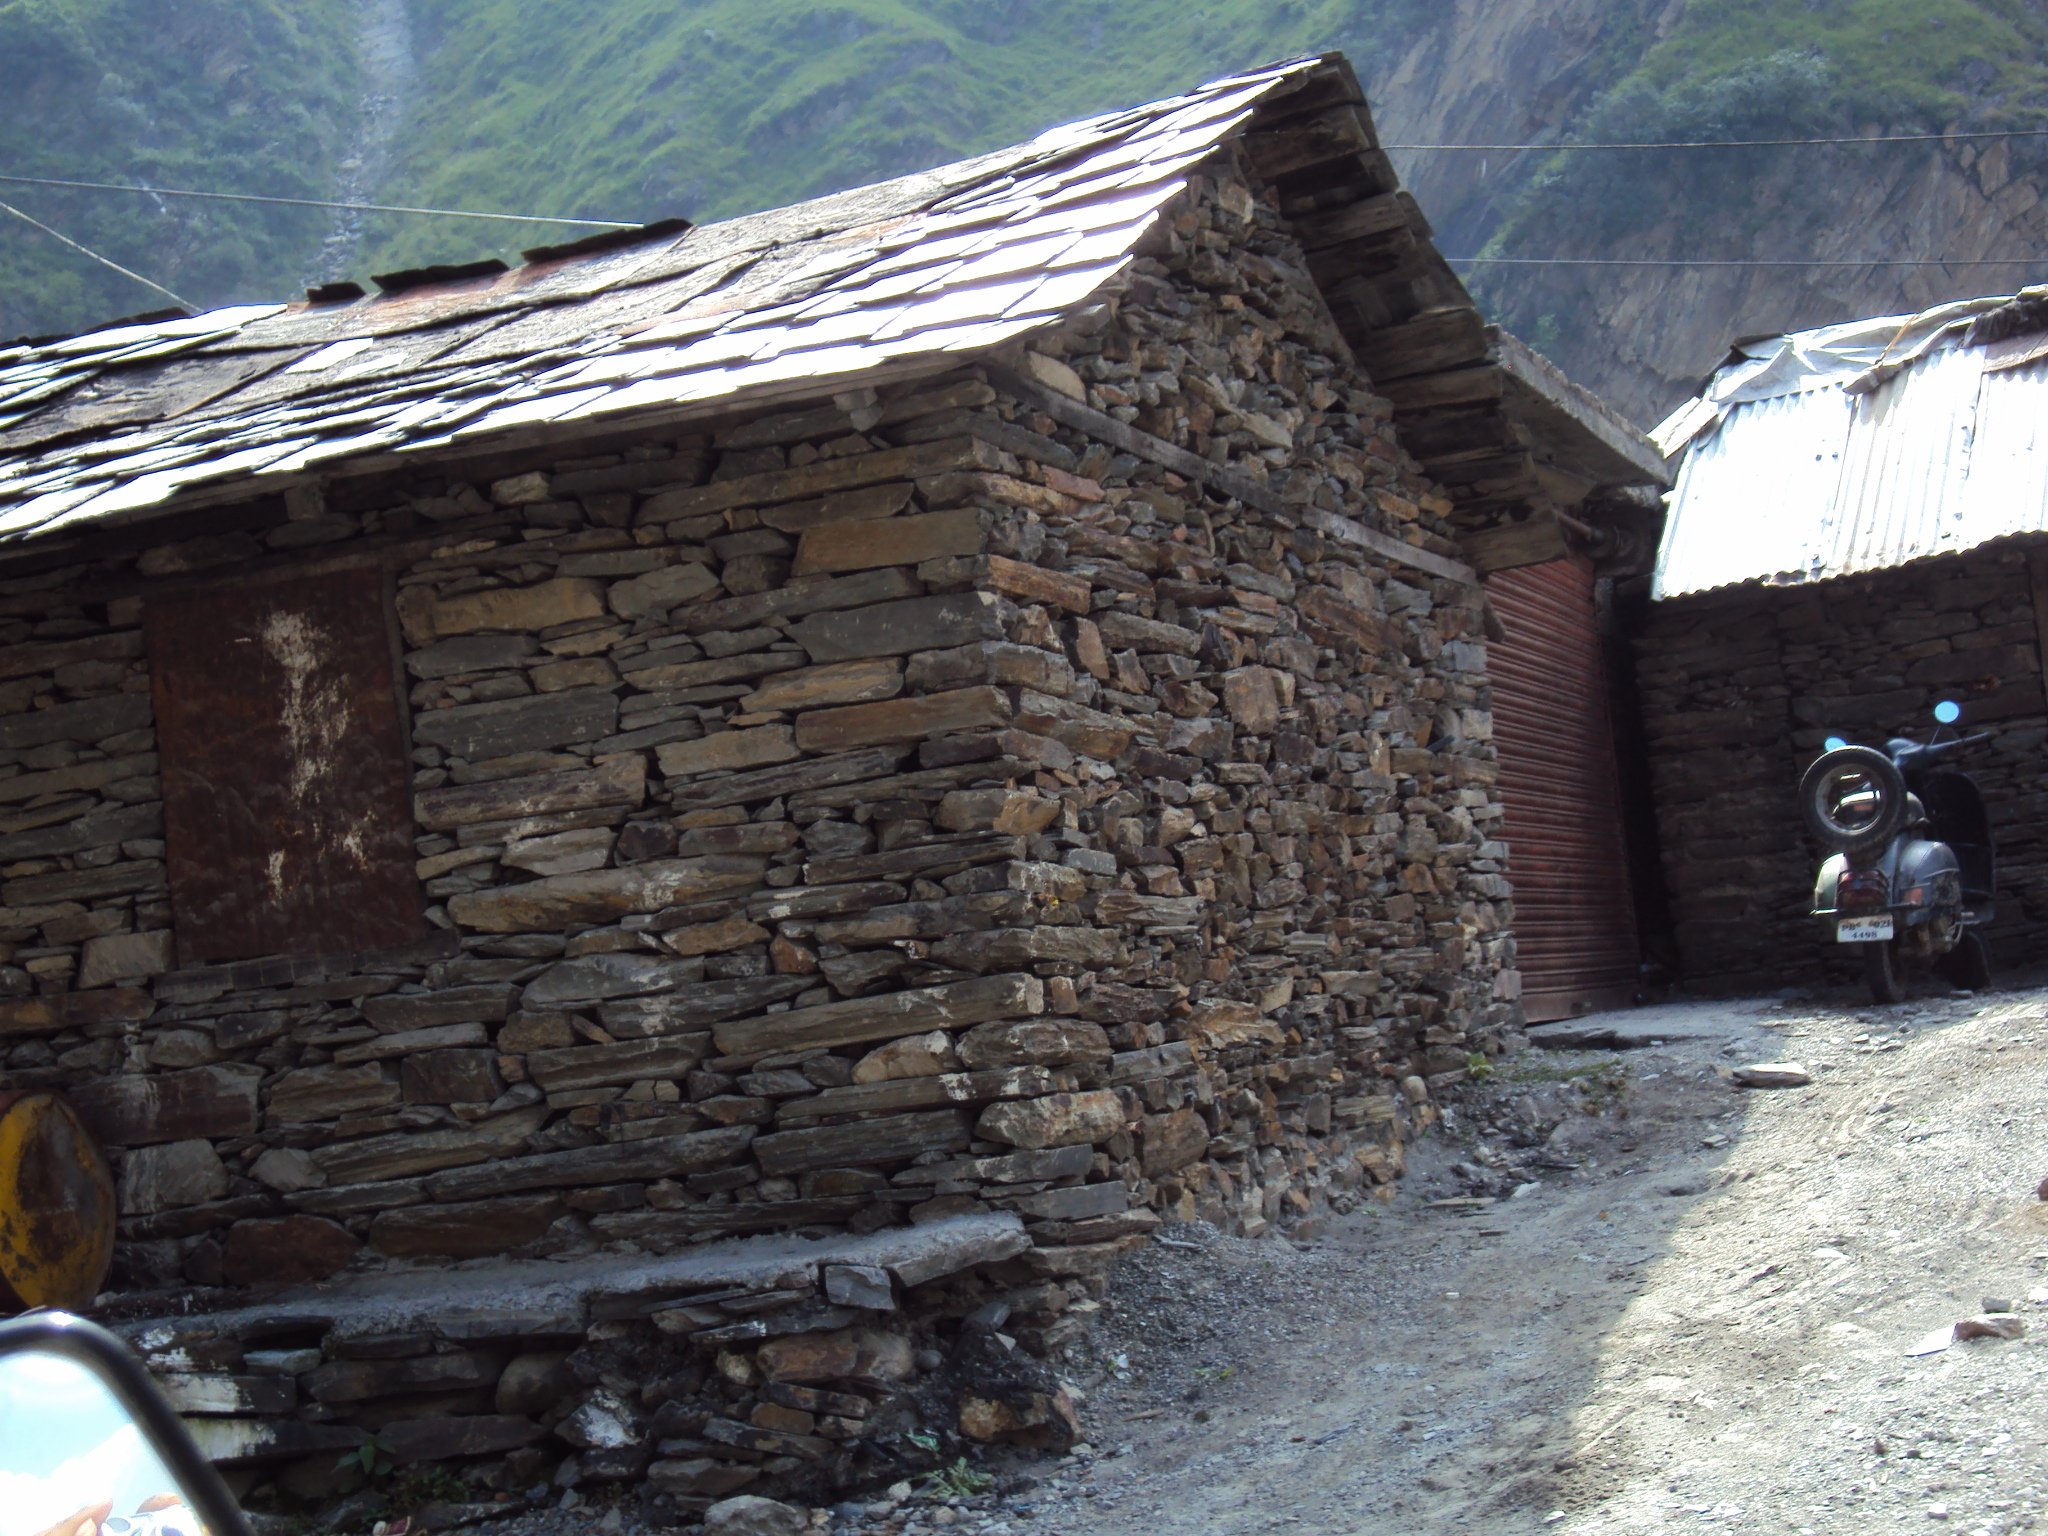 Dry Stone Building That Means A Stone Building Without